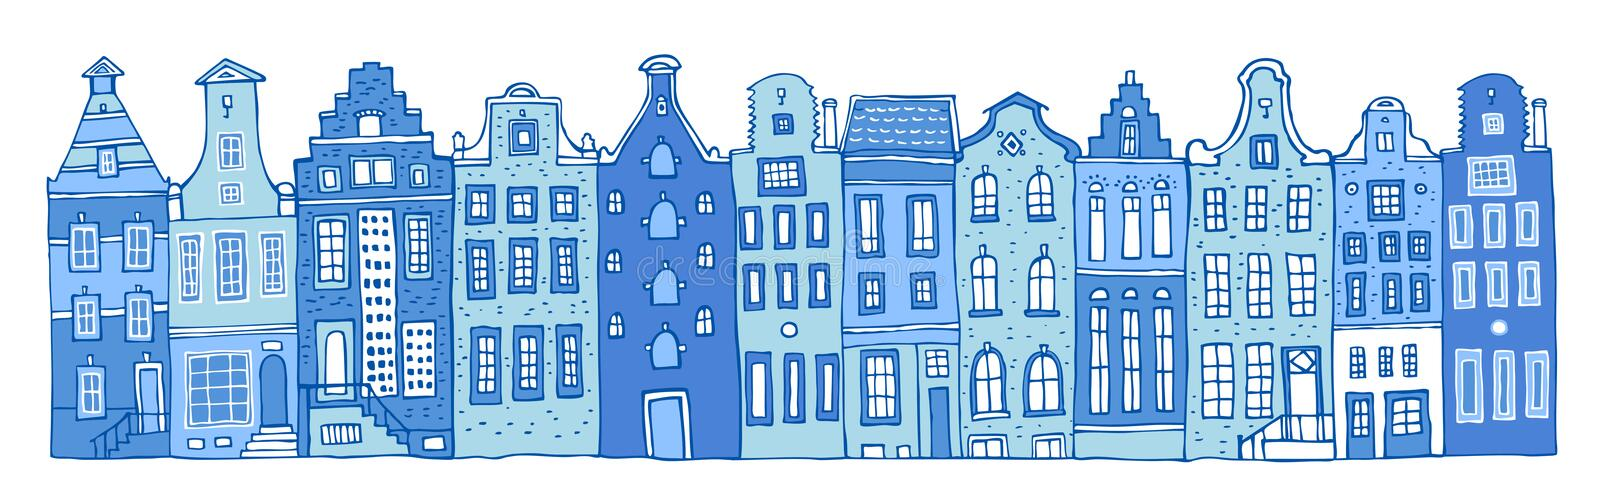 Amsterdam vector sketch hand drawn illustration. Cartoon outline houses facades in a row in colors of blue porcelain paints. Isolated on white background vector illustration